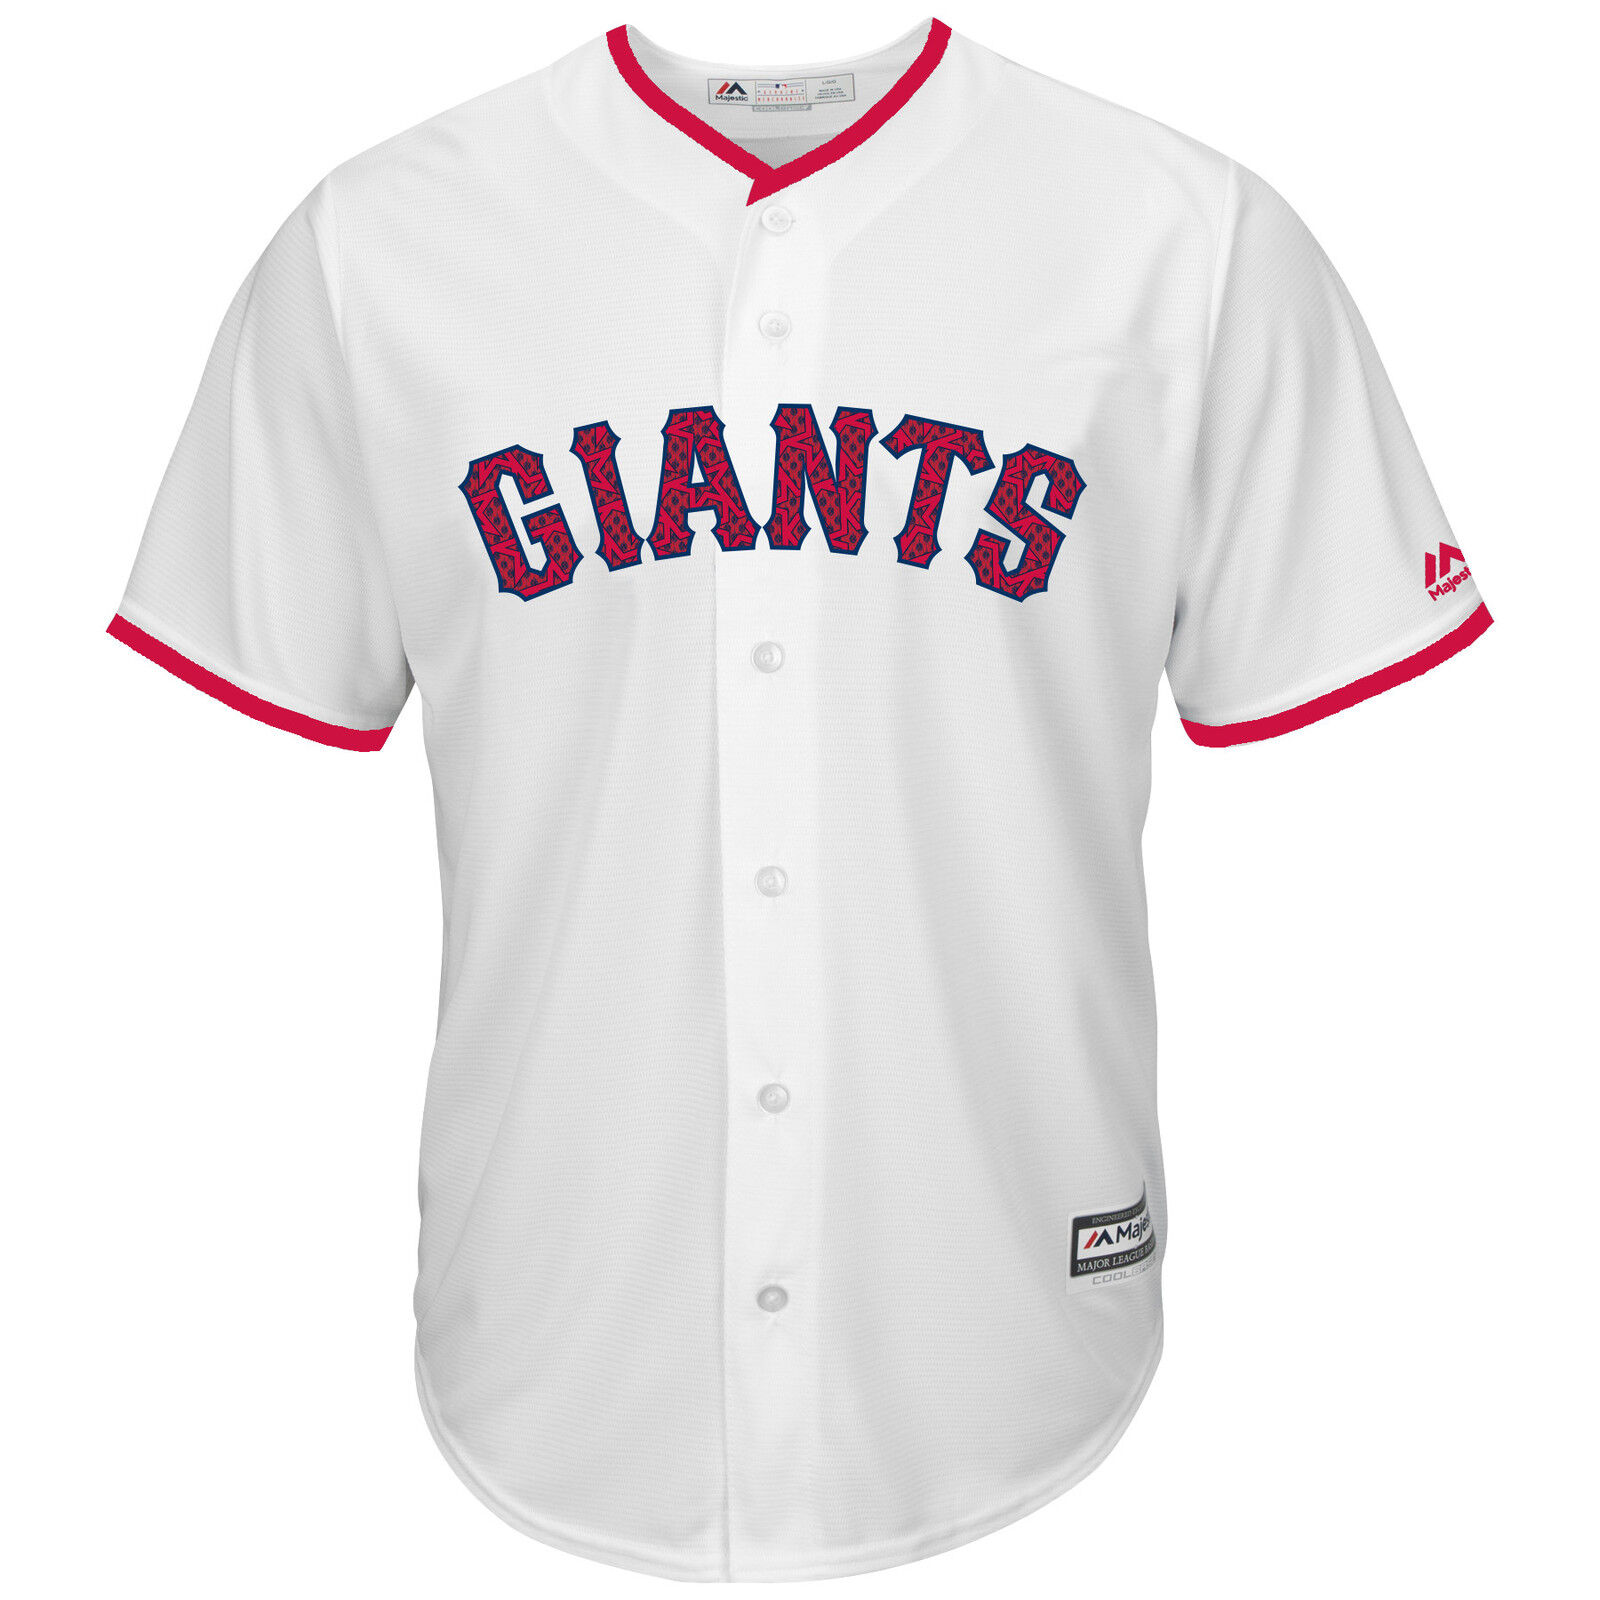 super popular 69684 e22ff Details about Buster Posey San Francisco Giants 2016 4th of July Cool Base  Jersey M